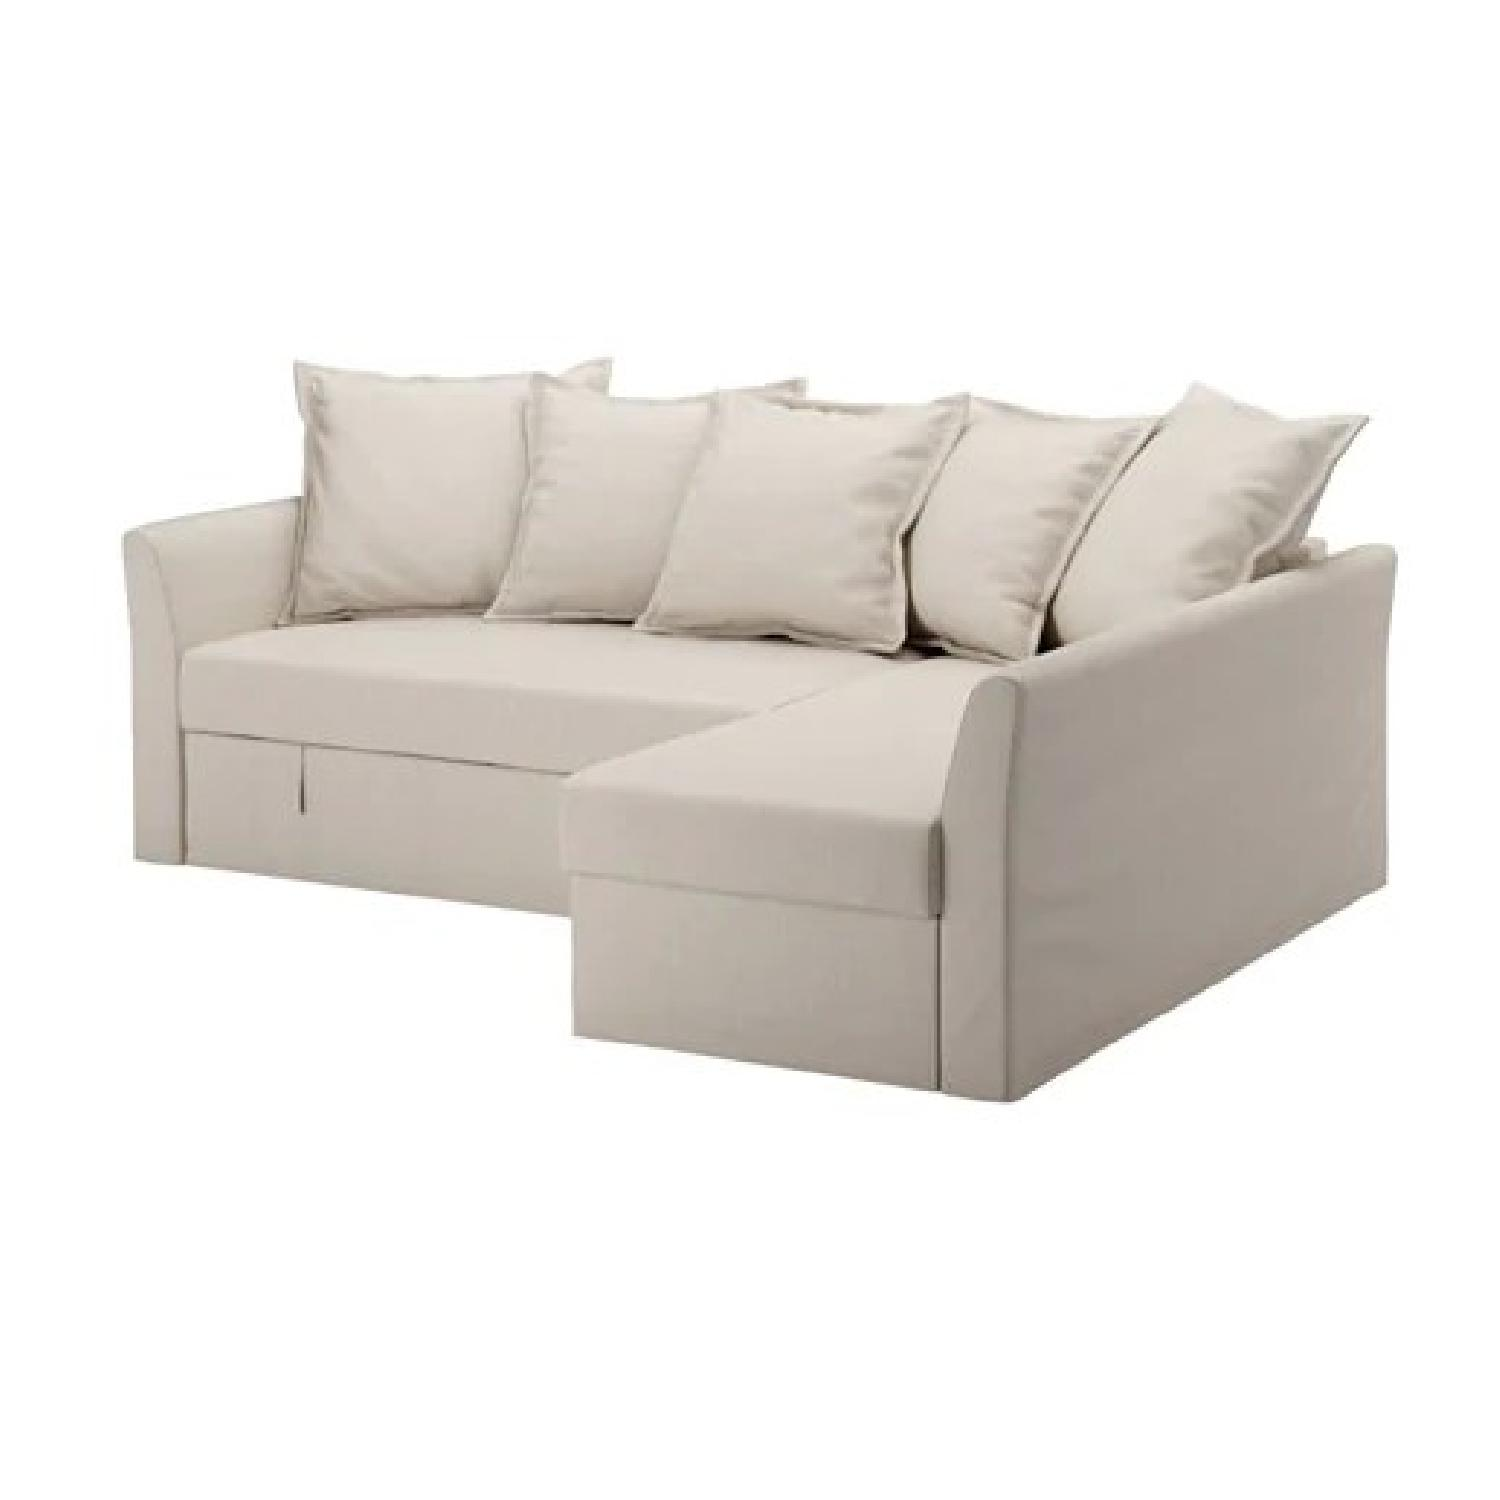 Ikea Holmsund 3 Seat Sleeper Sectional Sofa ...